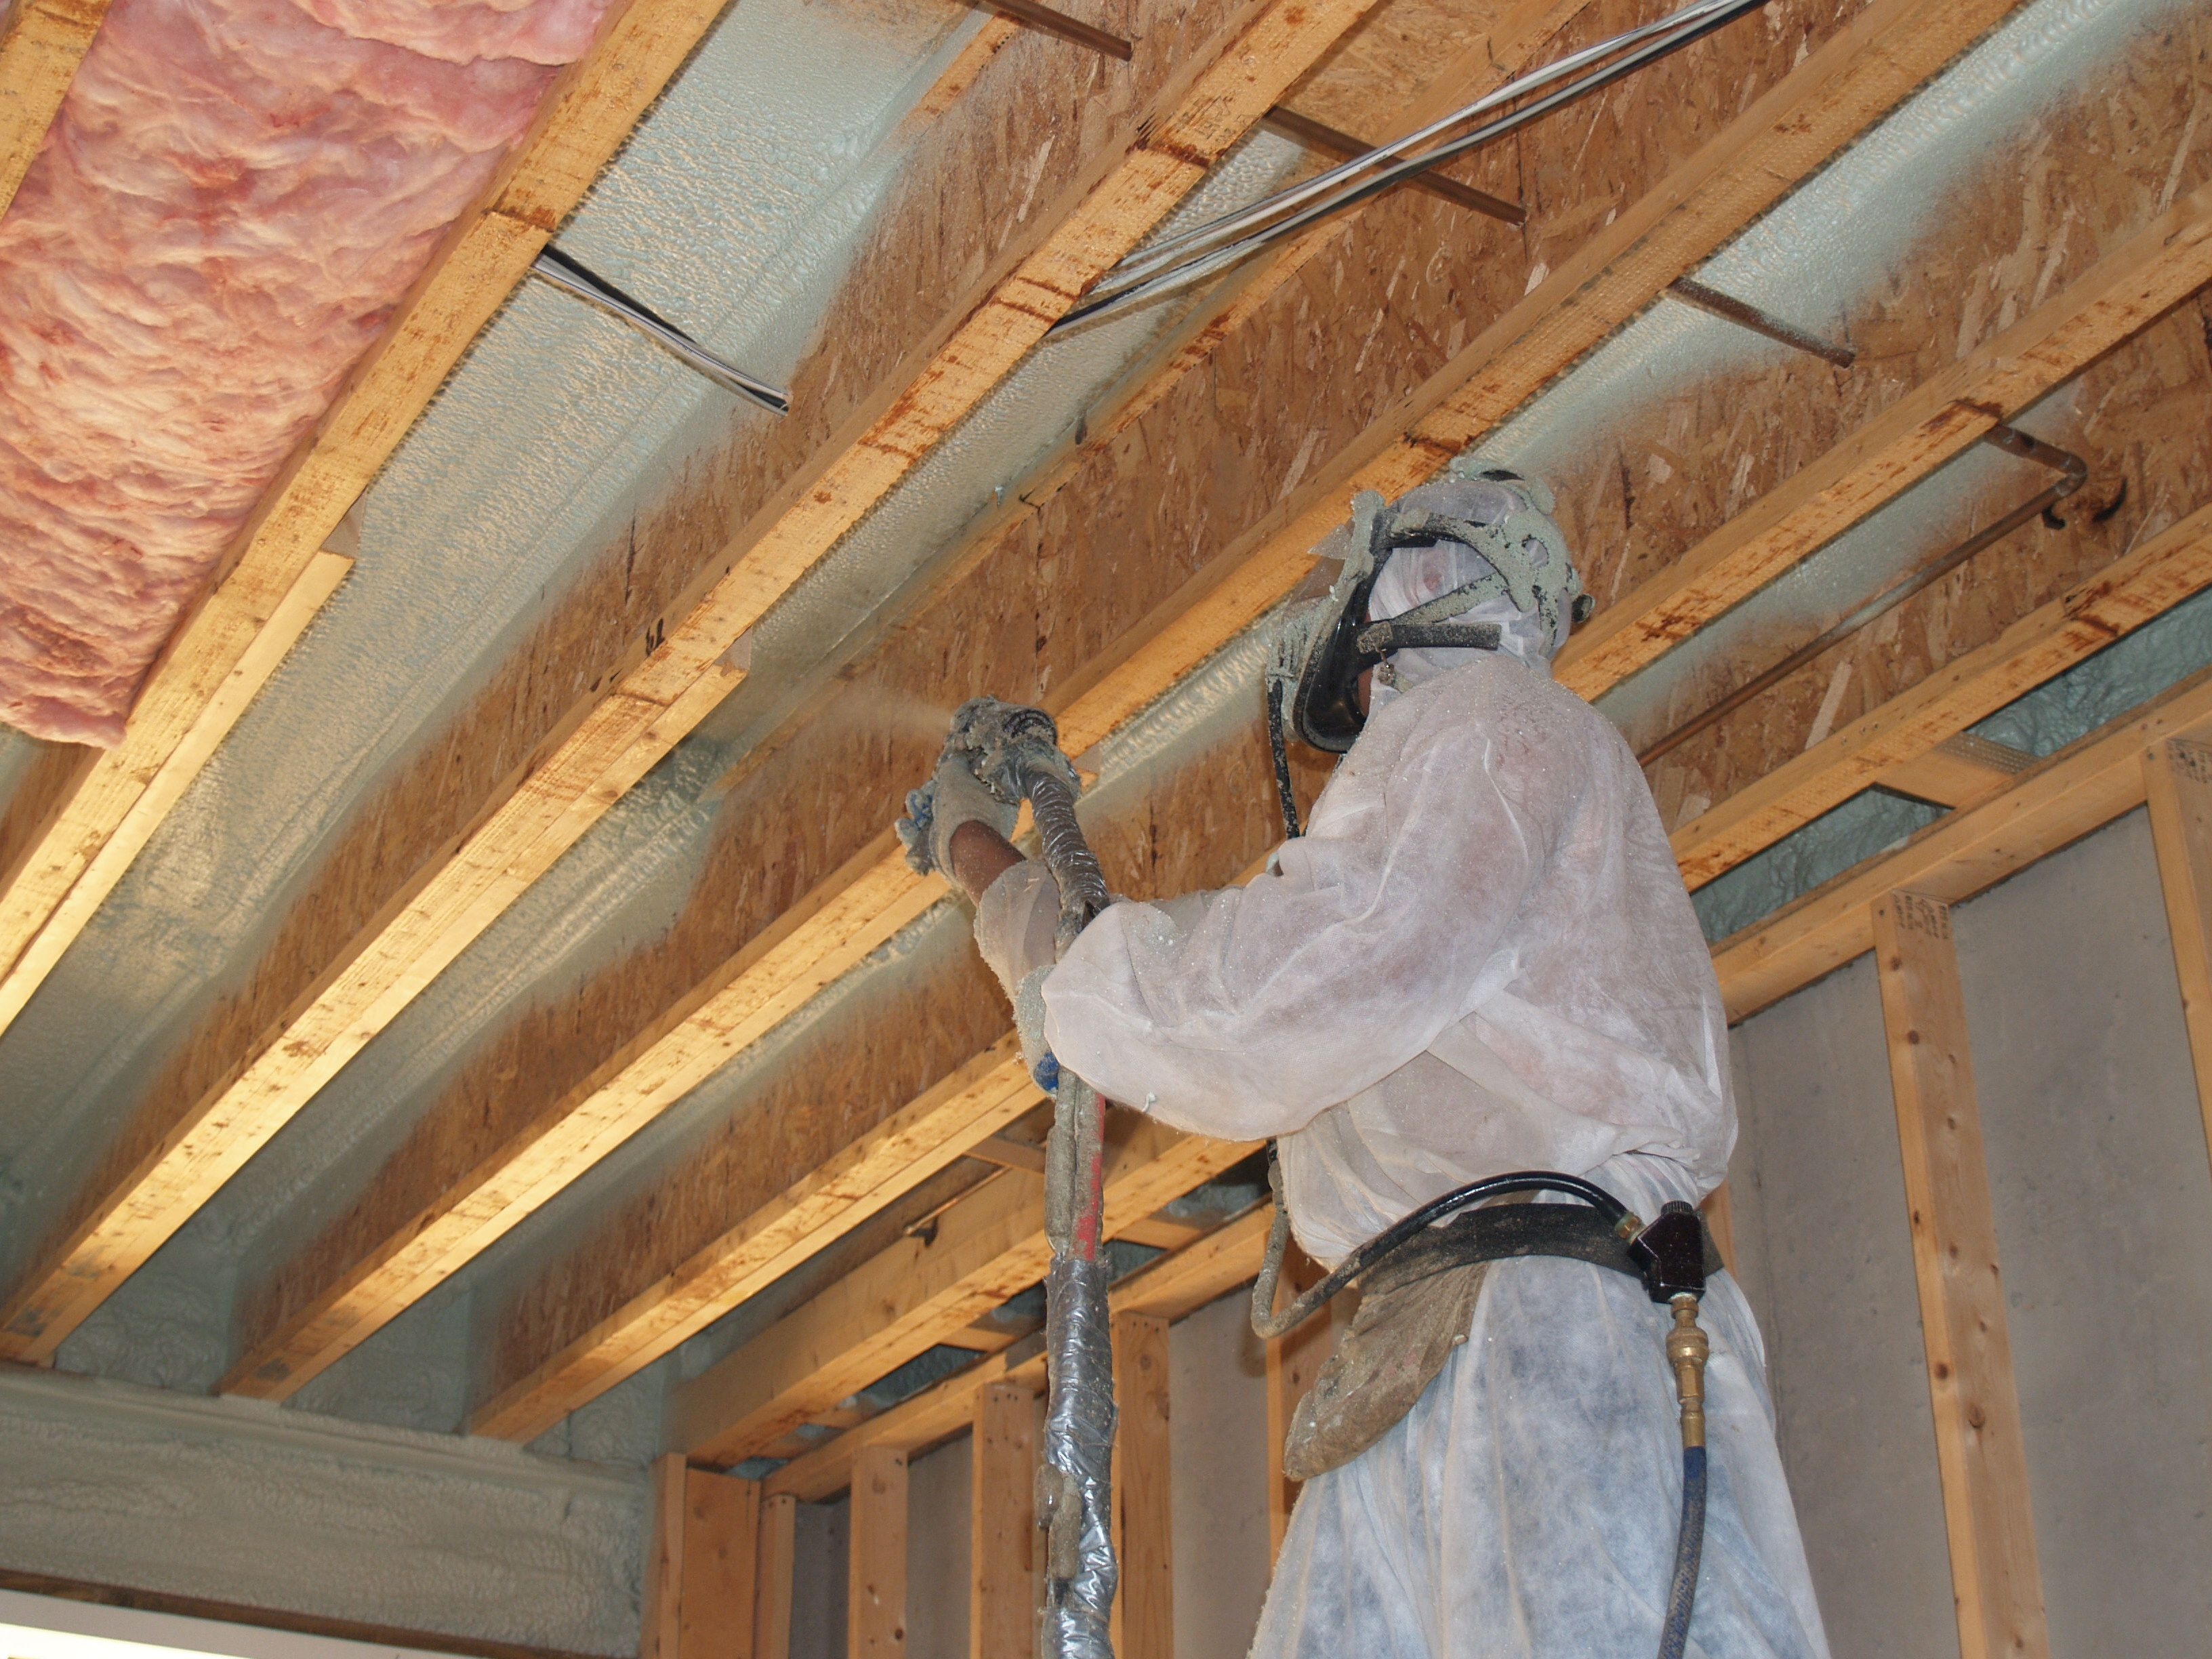 Closed Cell Spray Foam Insulation Used As An Air Barrier For